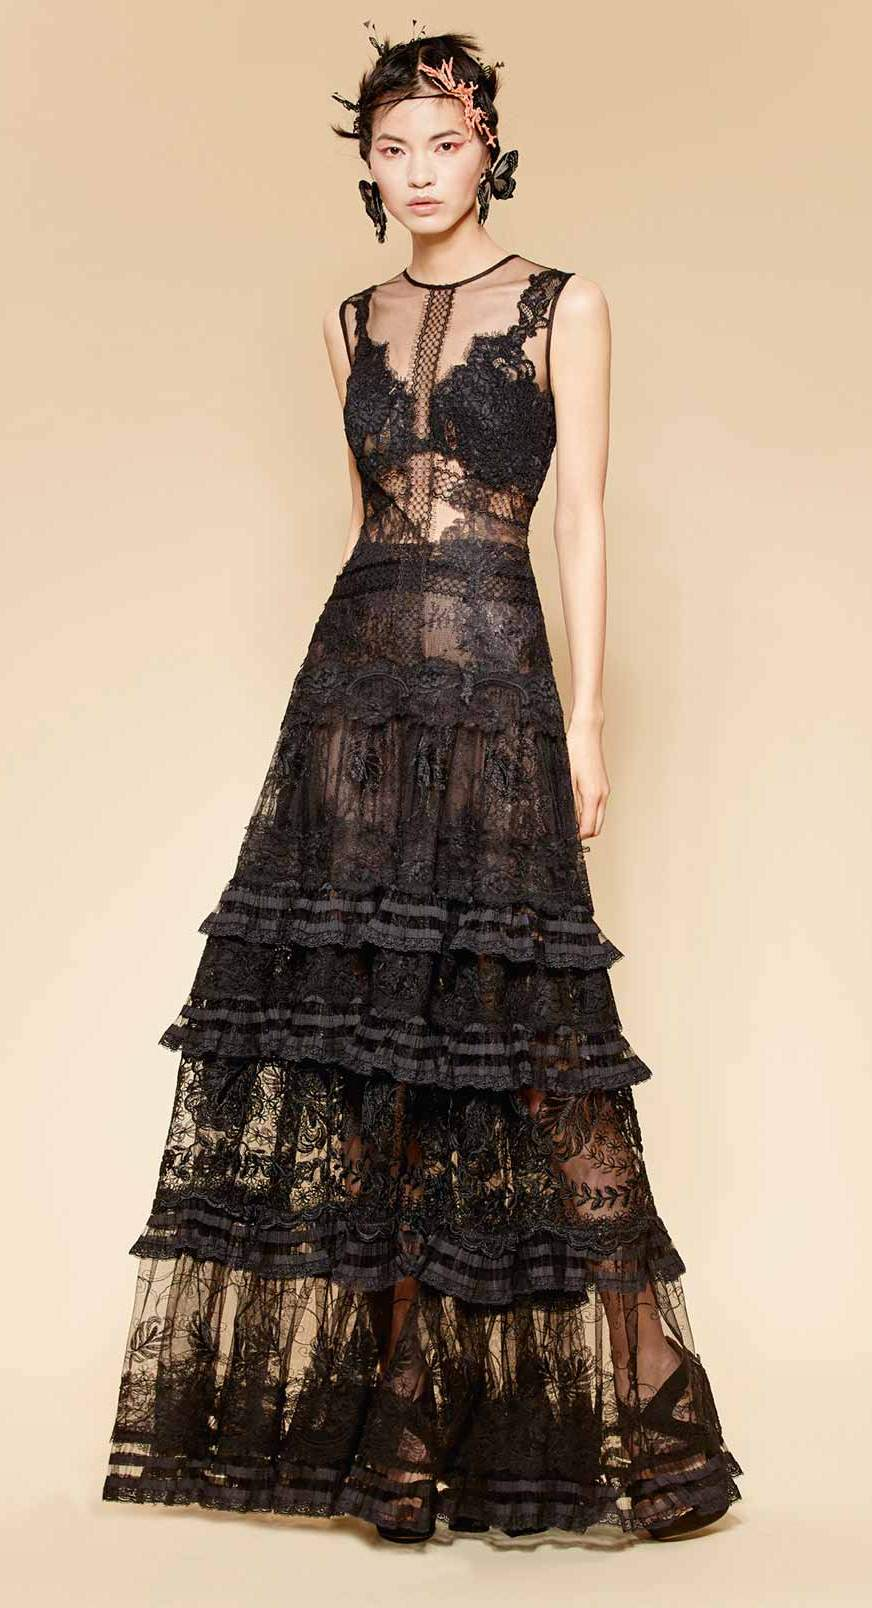 Long couture black gown made of fine French lace with boho folk lace layered